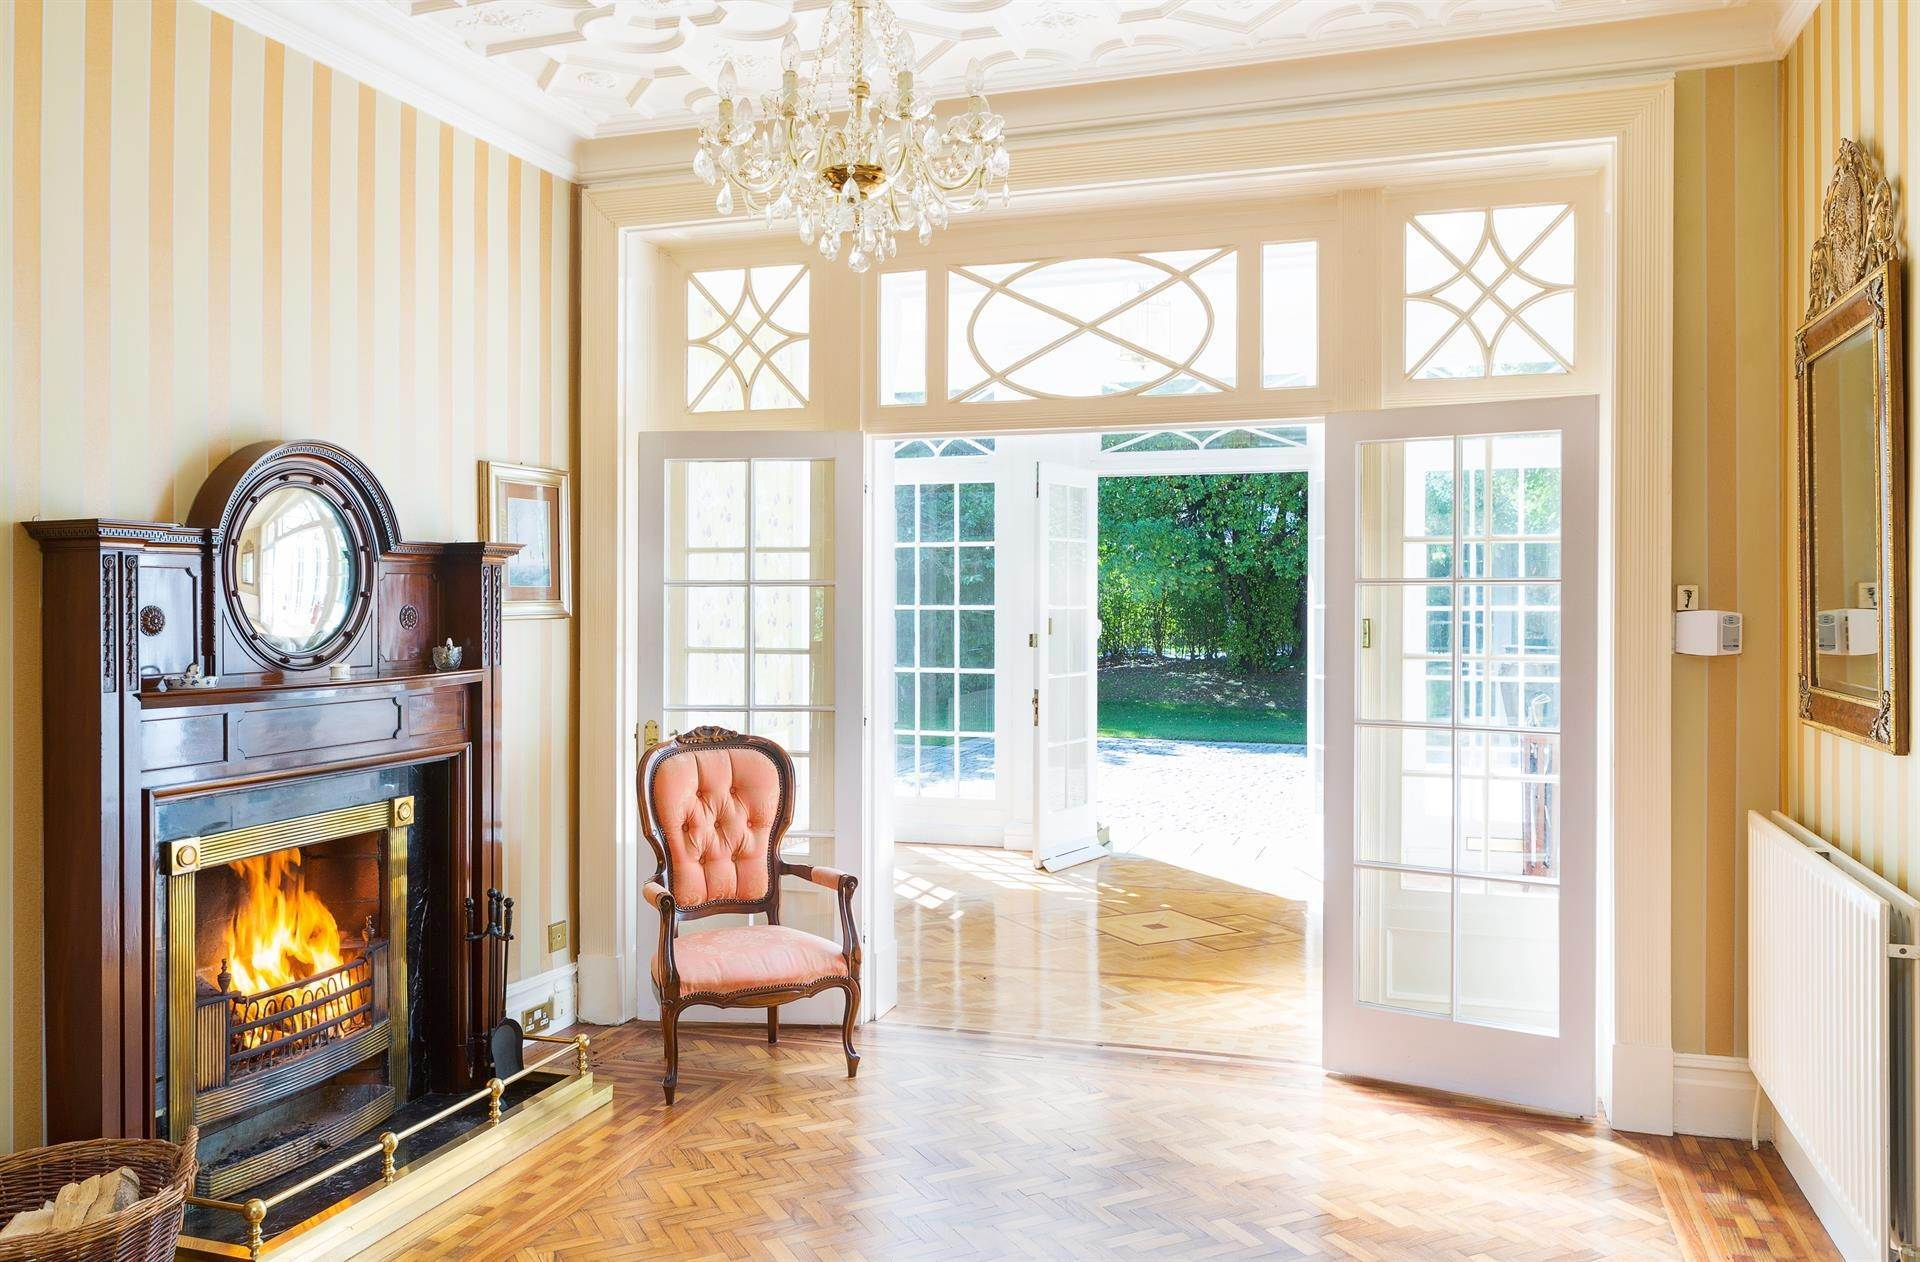 5. Single Family Home for Sale at Foxrock, Ireland